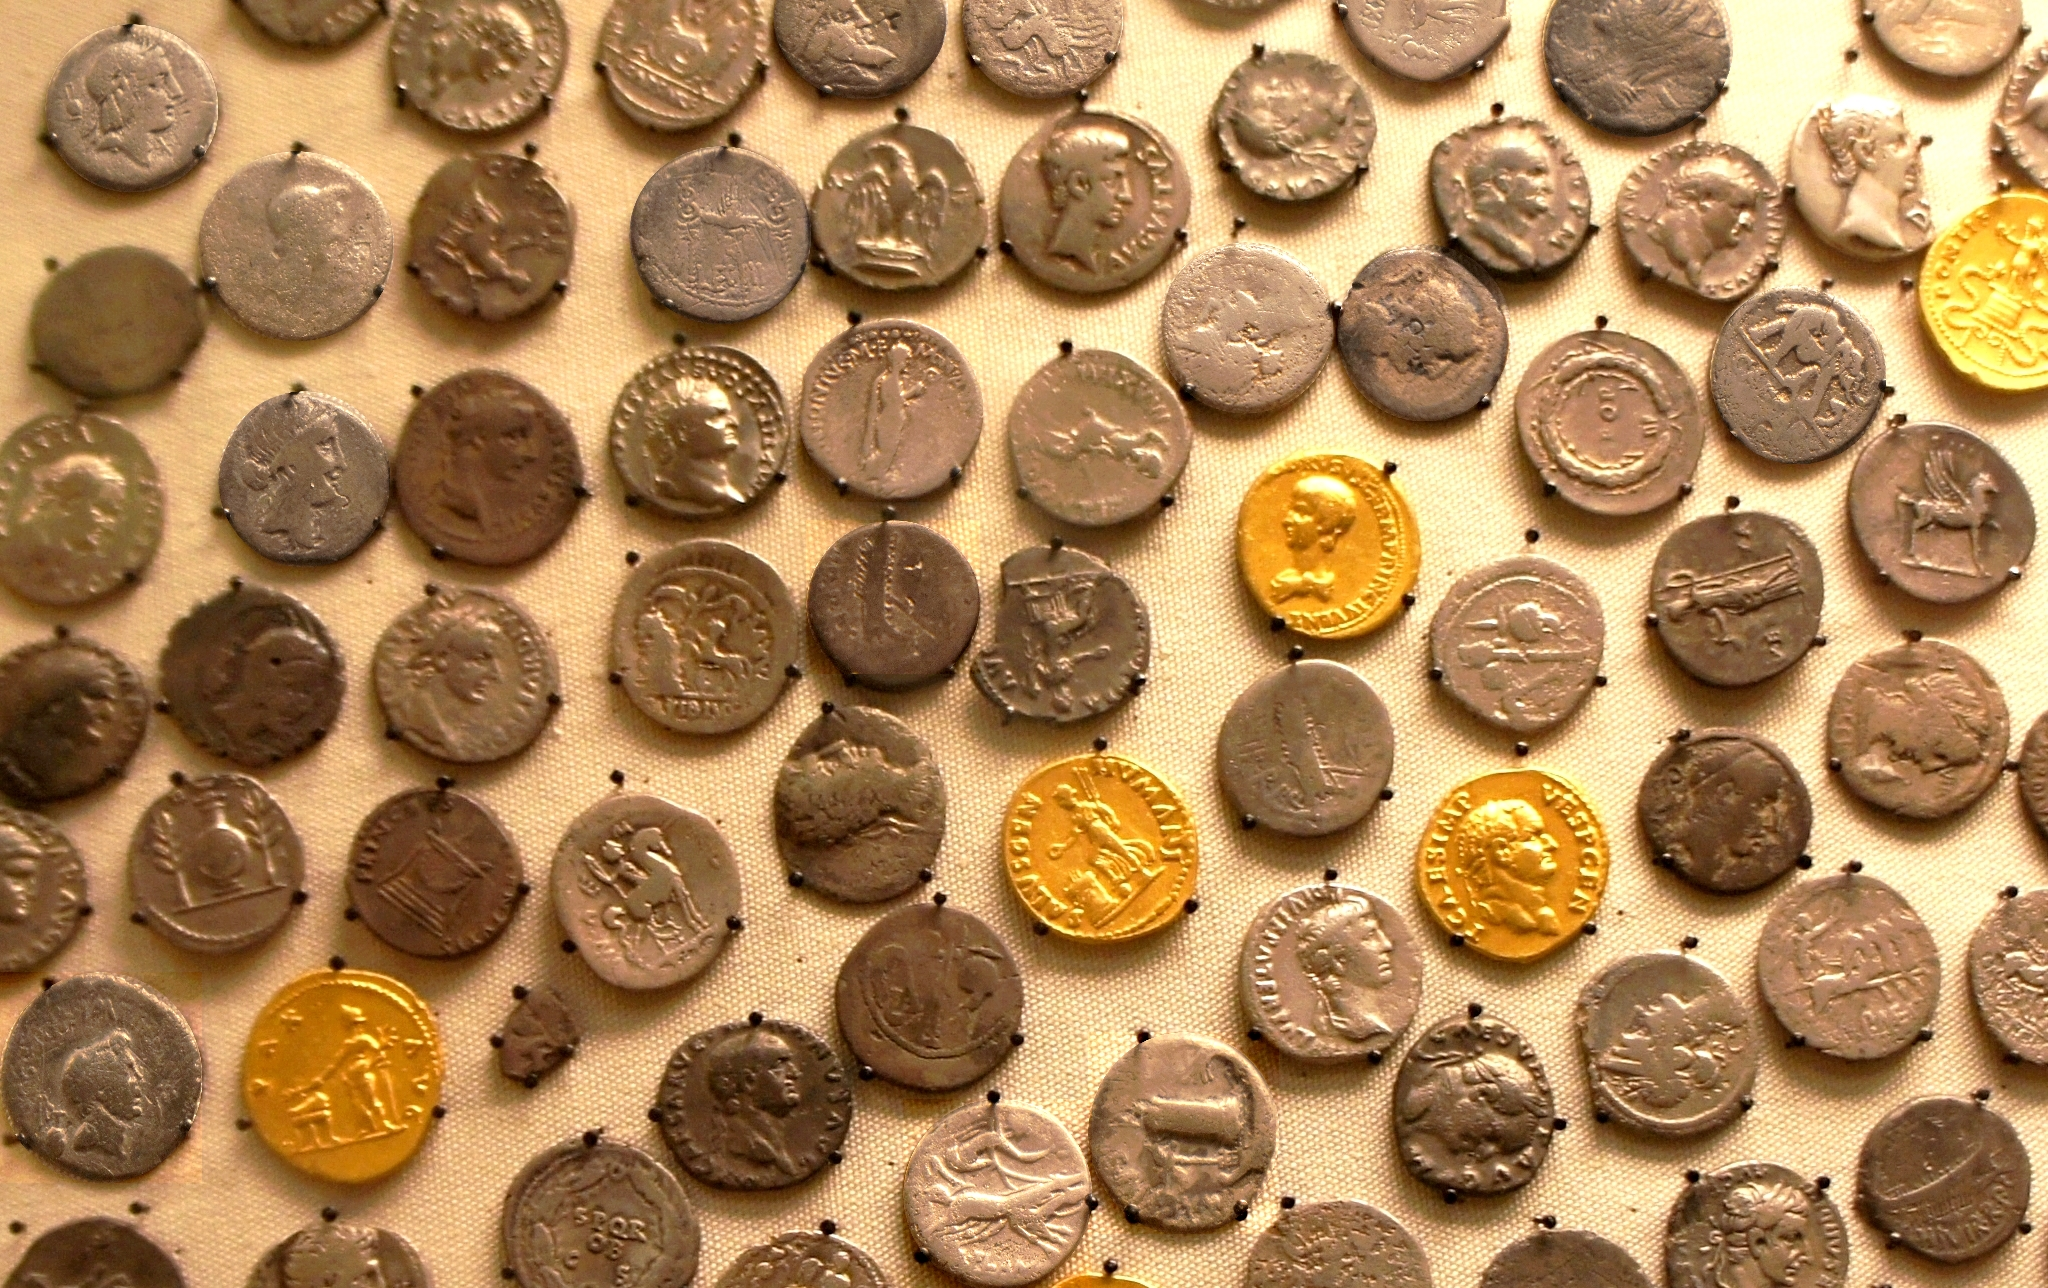 Howe Norfolk hoard, detail view, many Republican denarii amongst Imperial gold and silver